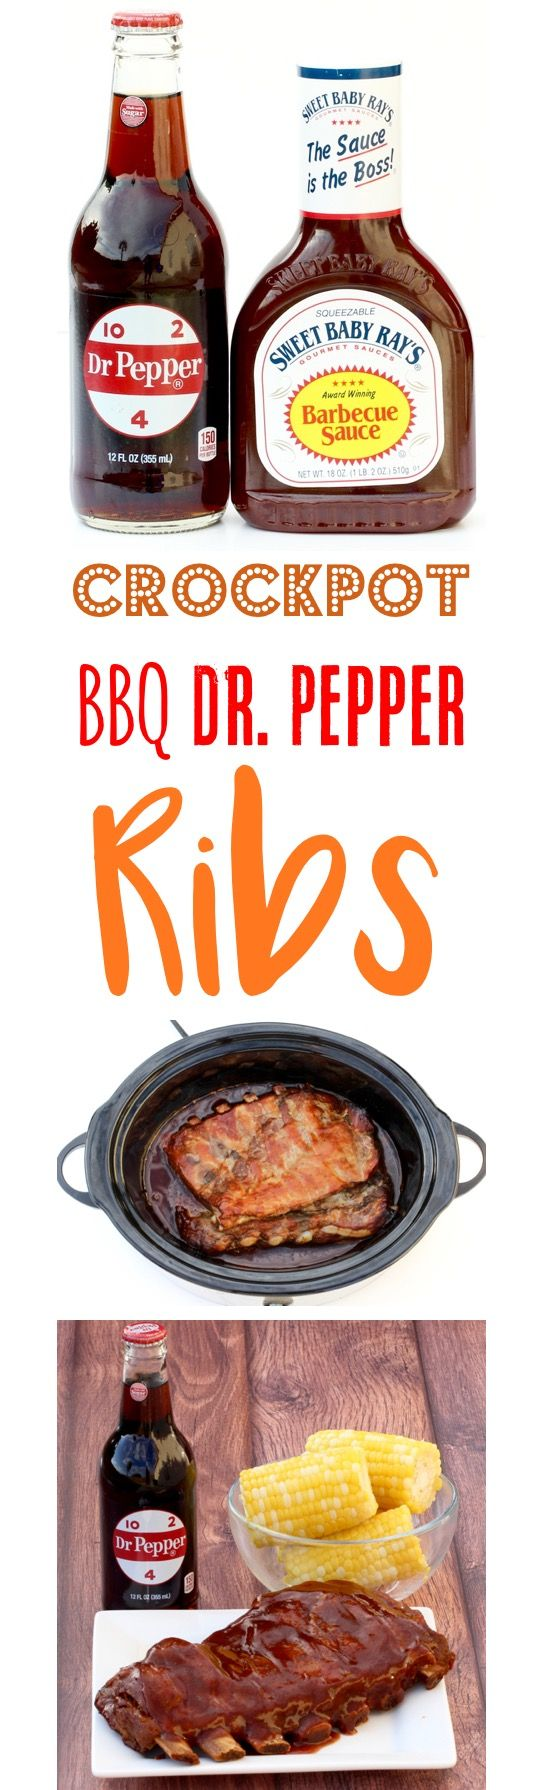 Crockkpot Ribs Recipes!  EASY Crock Pot Barbecue Dr. Pepper Ribs are so simple to make, and fall off the bone delicious!  Always a hit with family and friends! | TheFrugalGirls.com